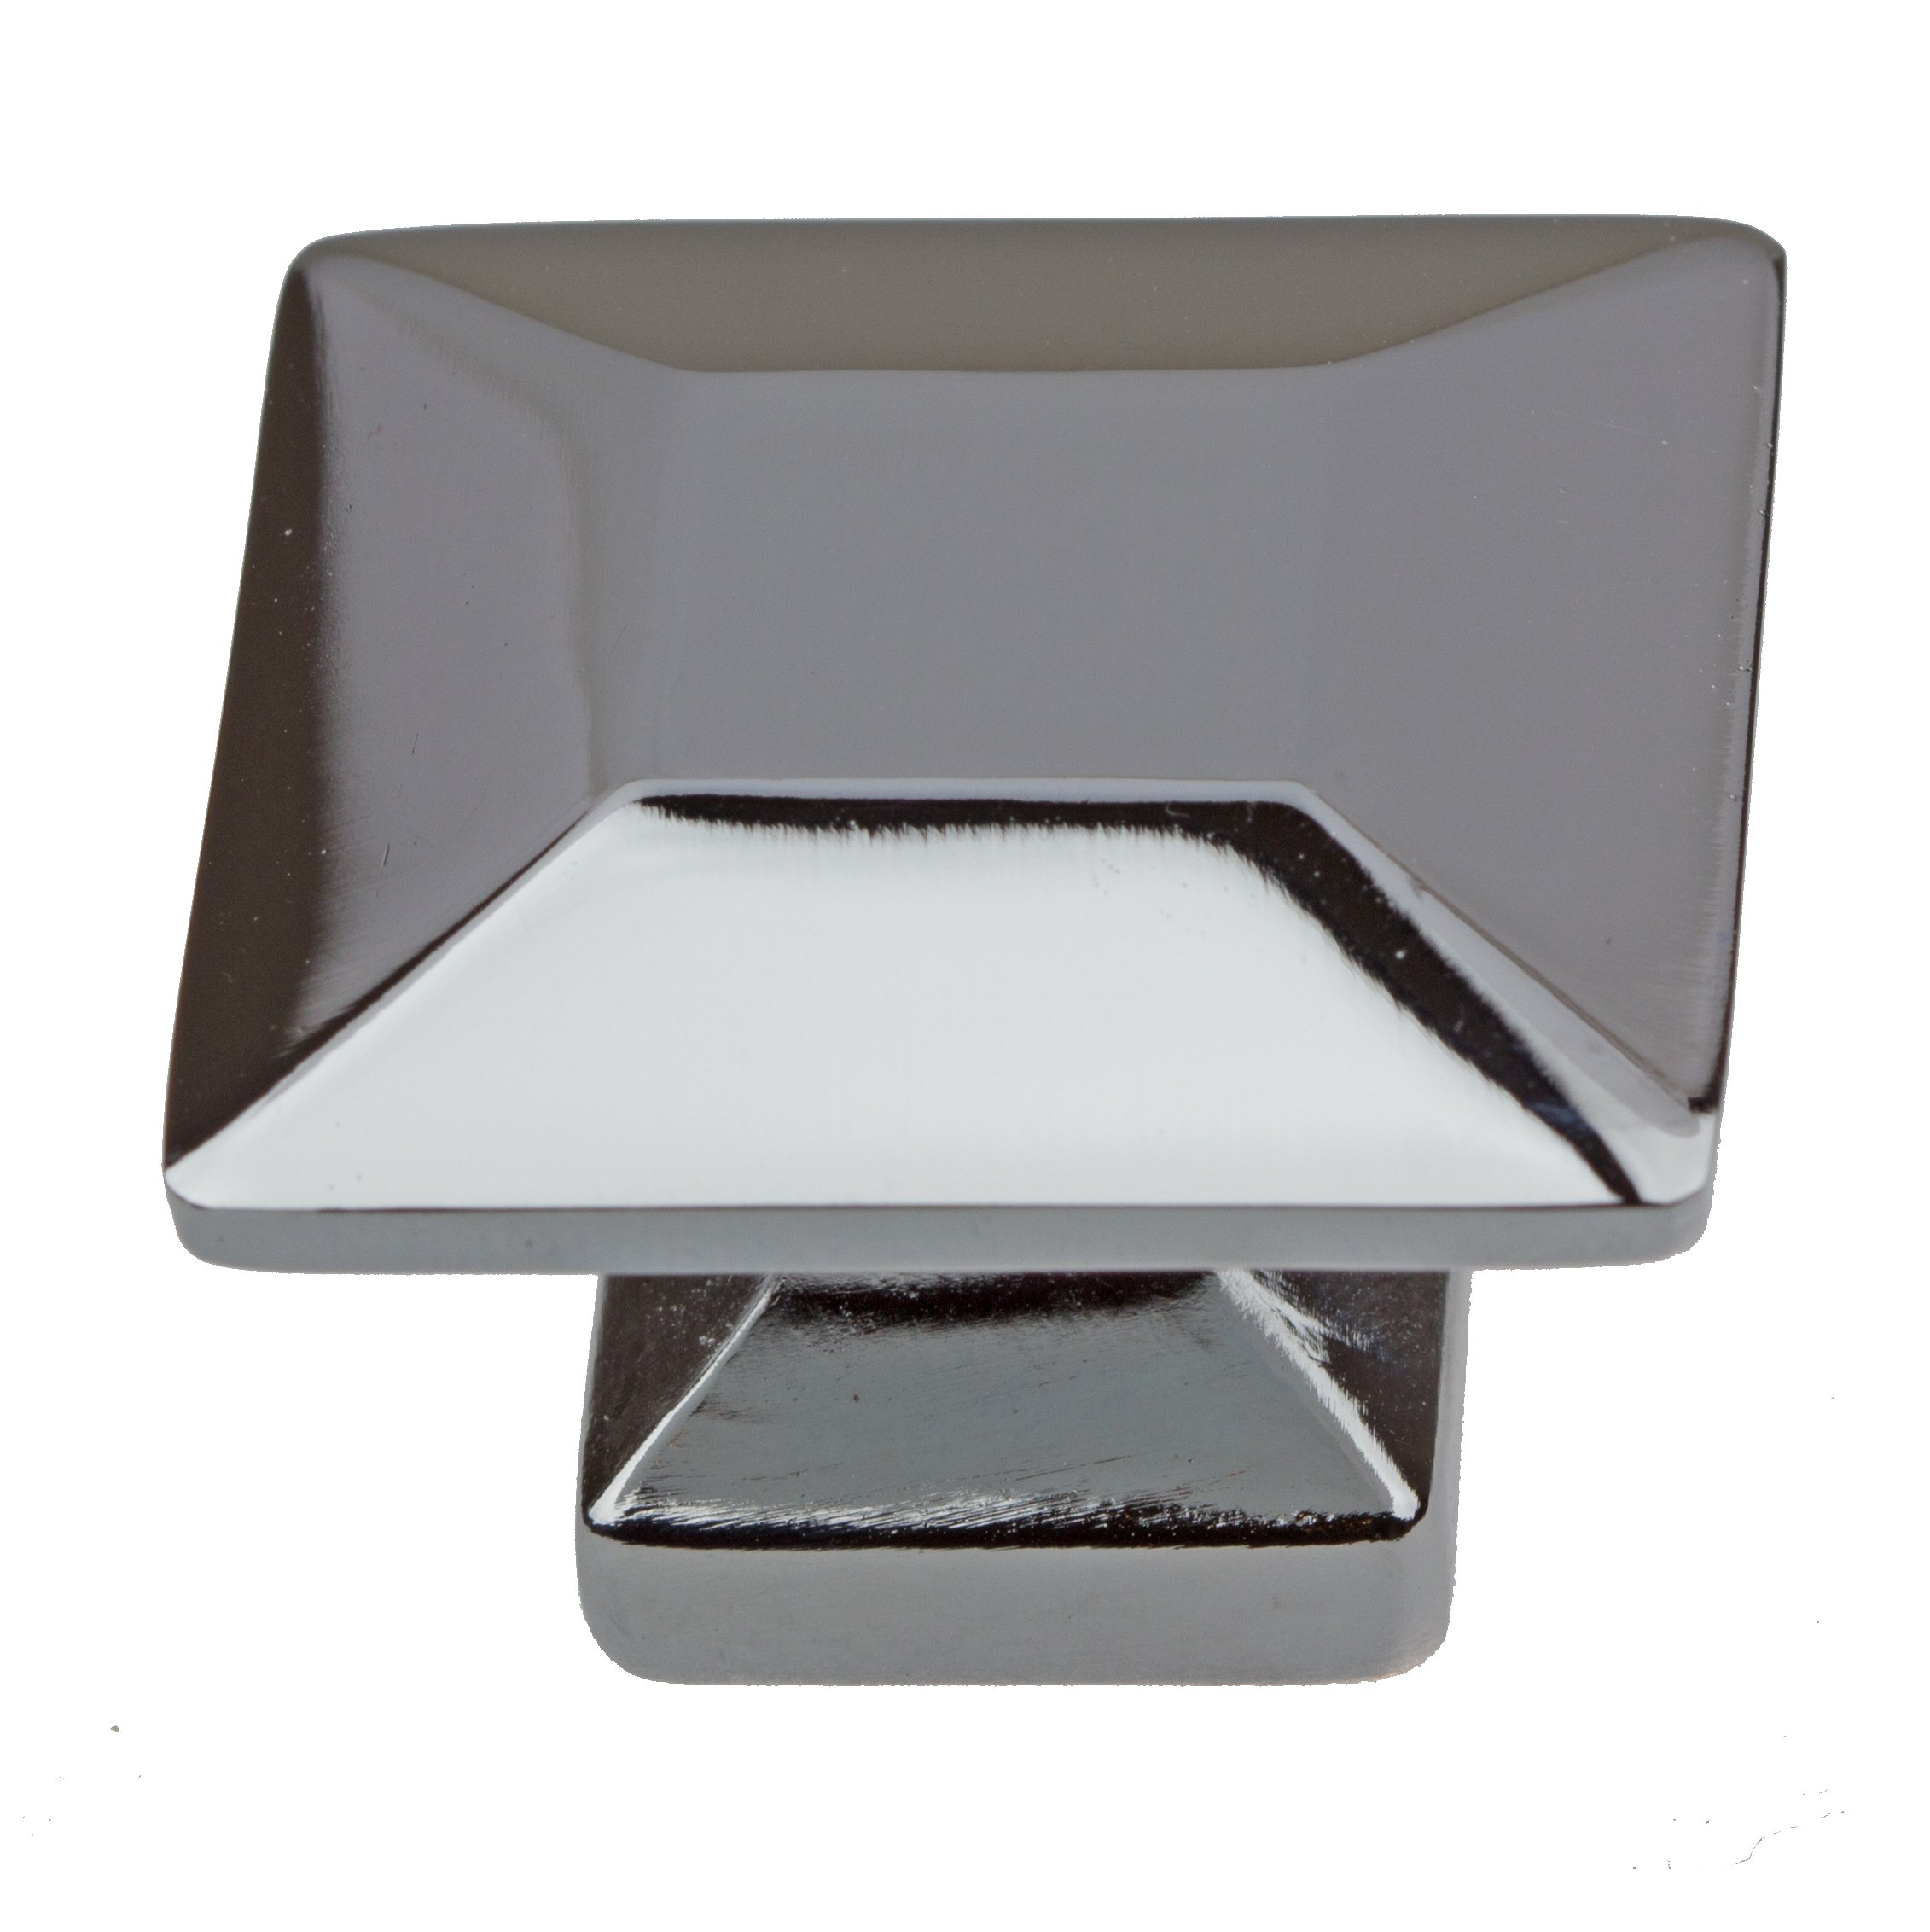 GlideRite Hardware 5101-PC-100 1.375 inch Polished Chrome Square Cabinet Knobs 100 Pack by GlideRite Hardware (Image #1)